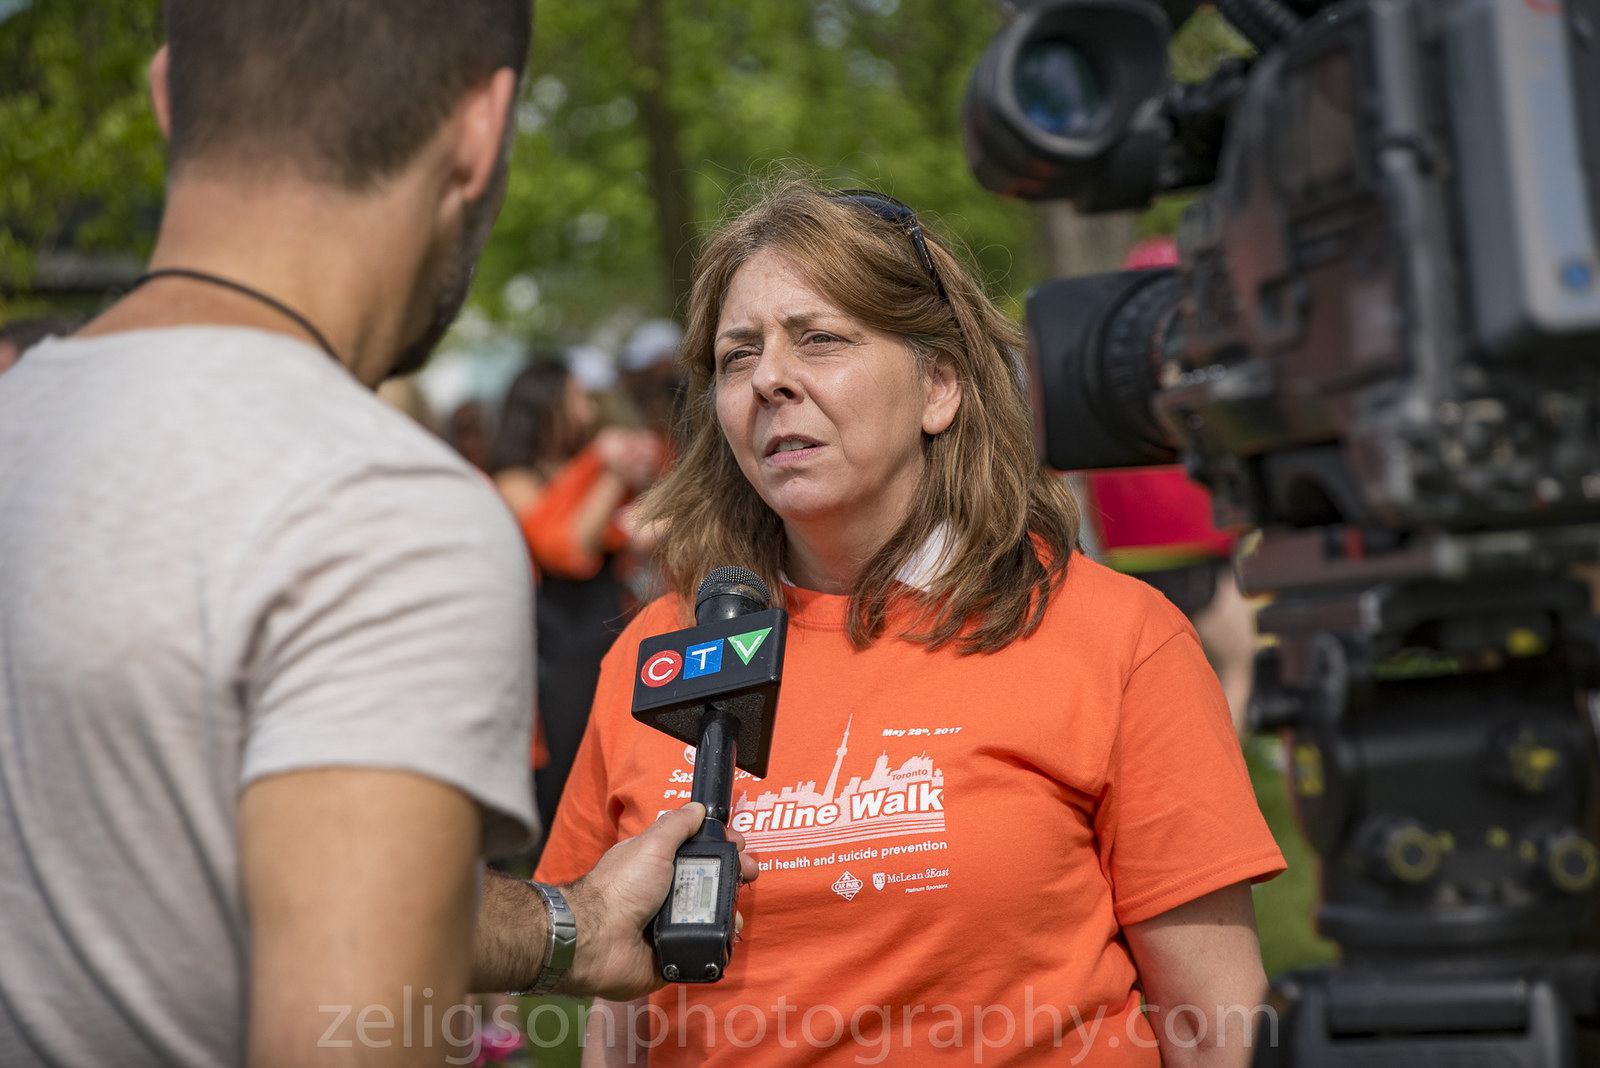 CTV Toronto interview, click to view